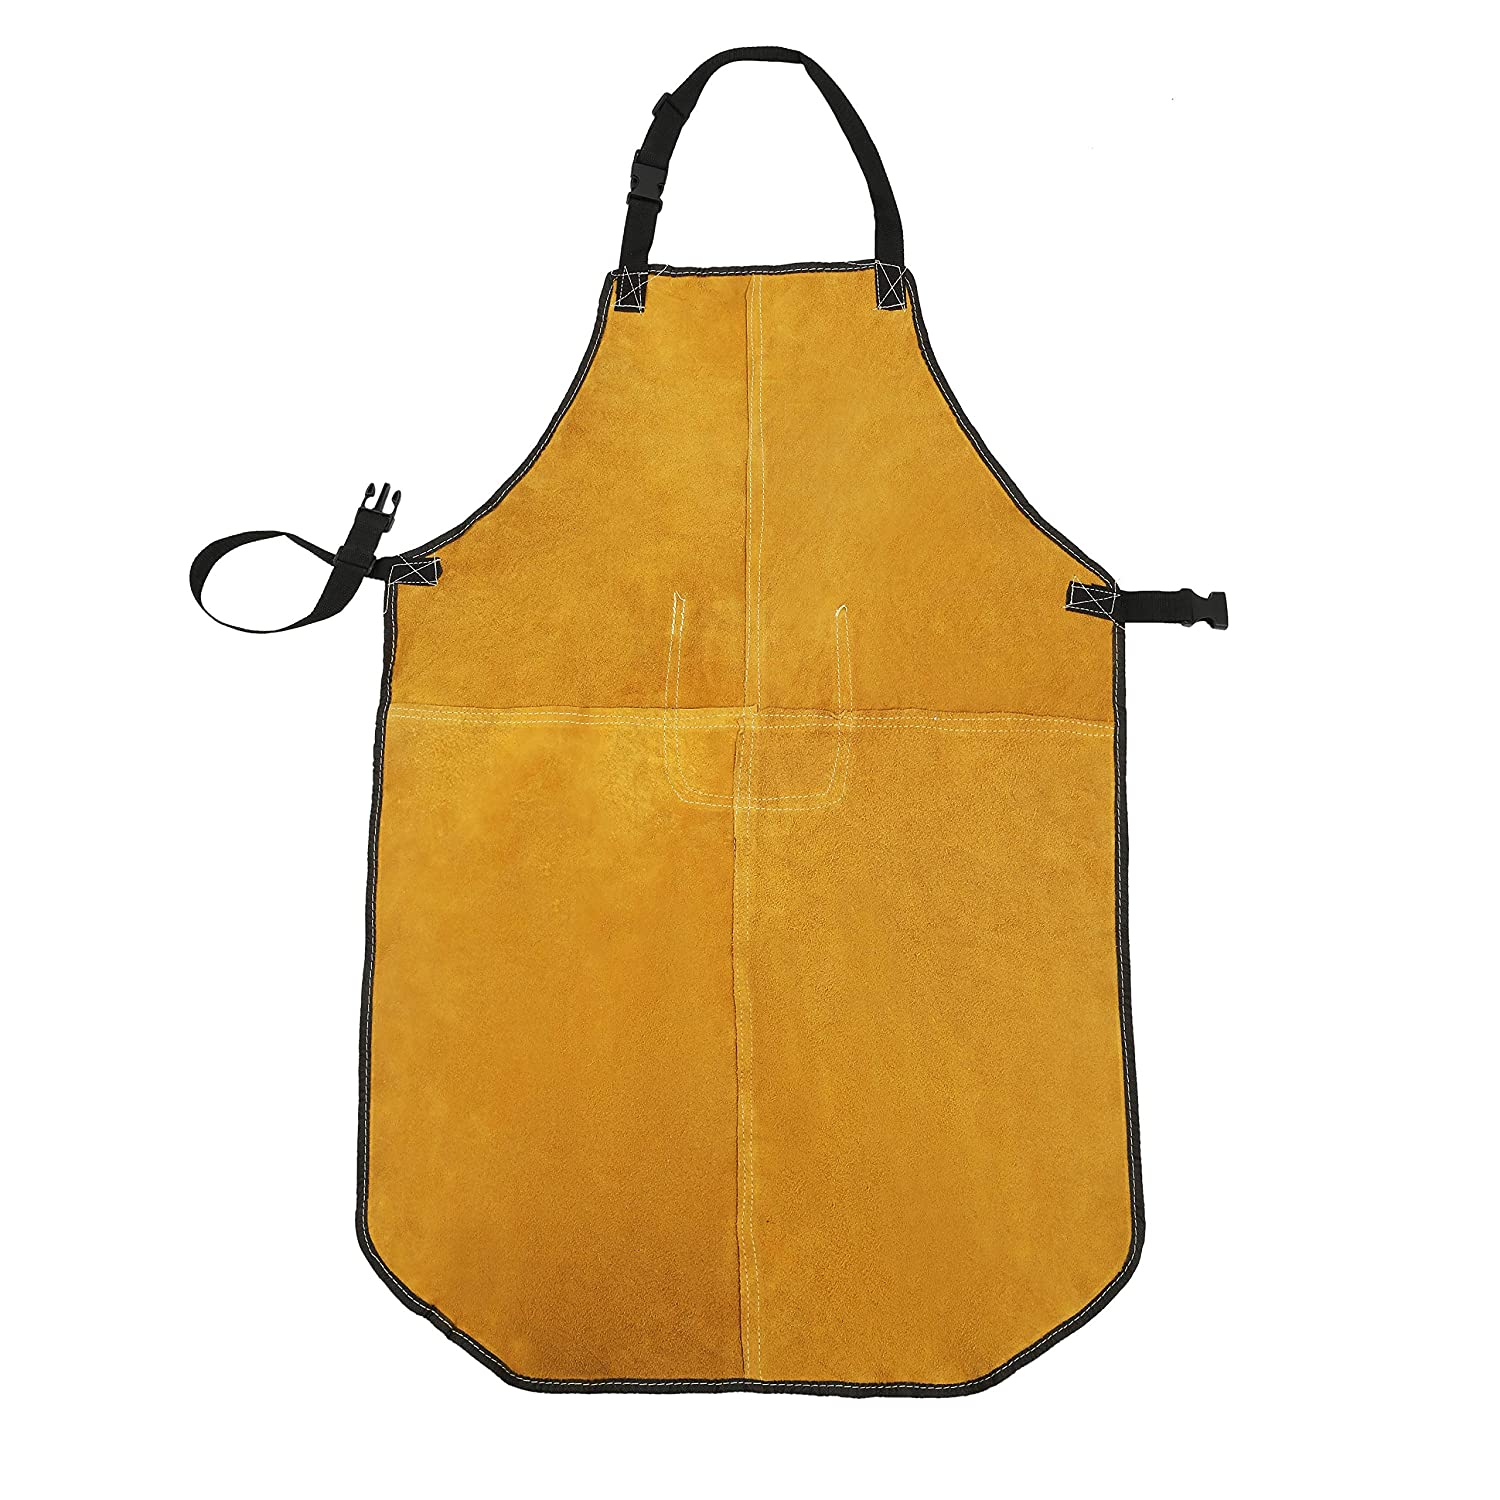 Mufly Welding Apron Yellow Cowhide Split Leather Extra Large Bib Apron with Tool Pockets Heat Flame-Resistant Work Apron 28-Inch X 39-Inch